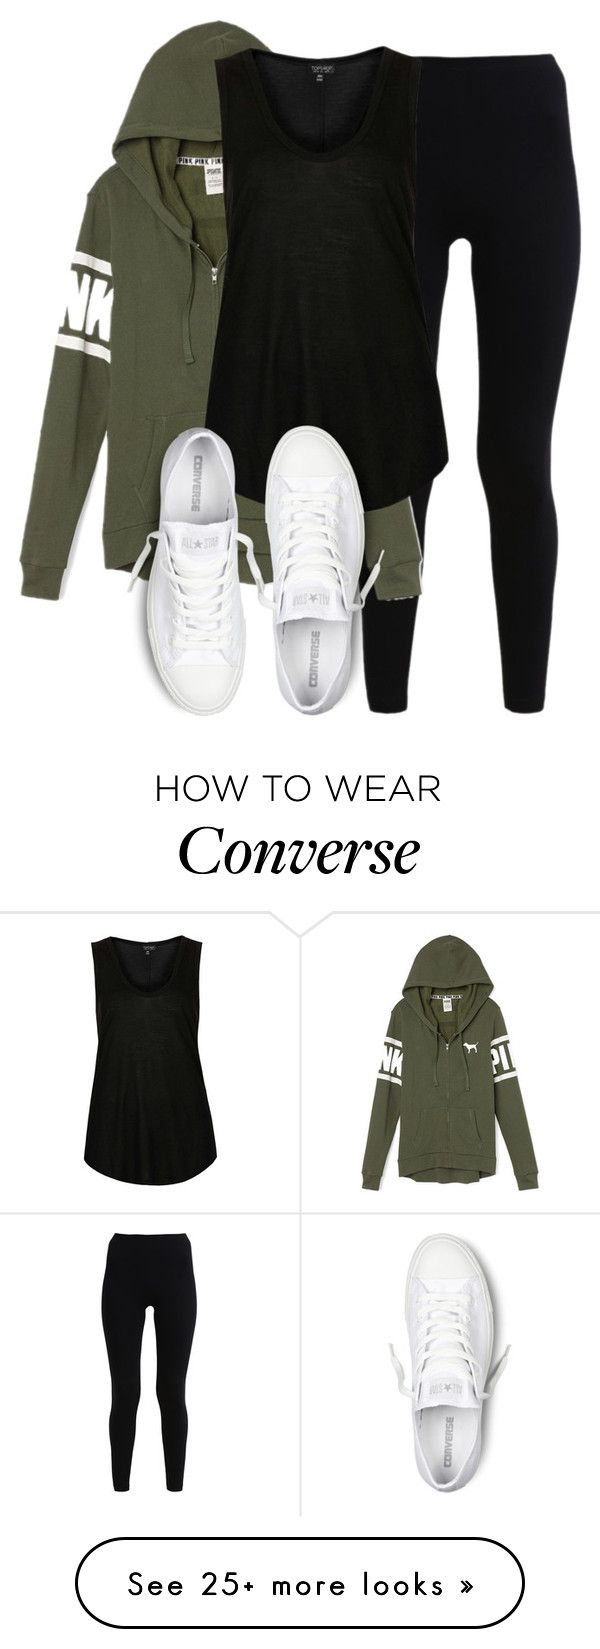 """perrie insp"" by littlemixmakeup on Polyvore featuring American Apparel, Victoria's Secret, Topshop and Converse"